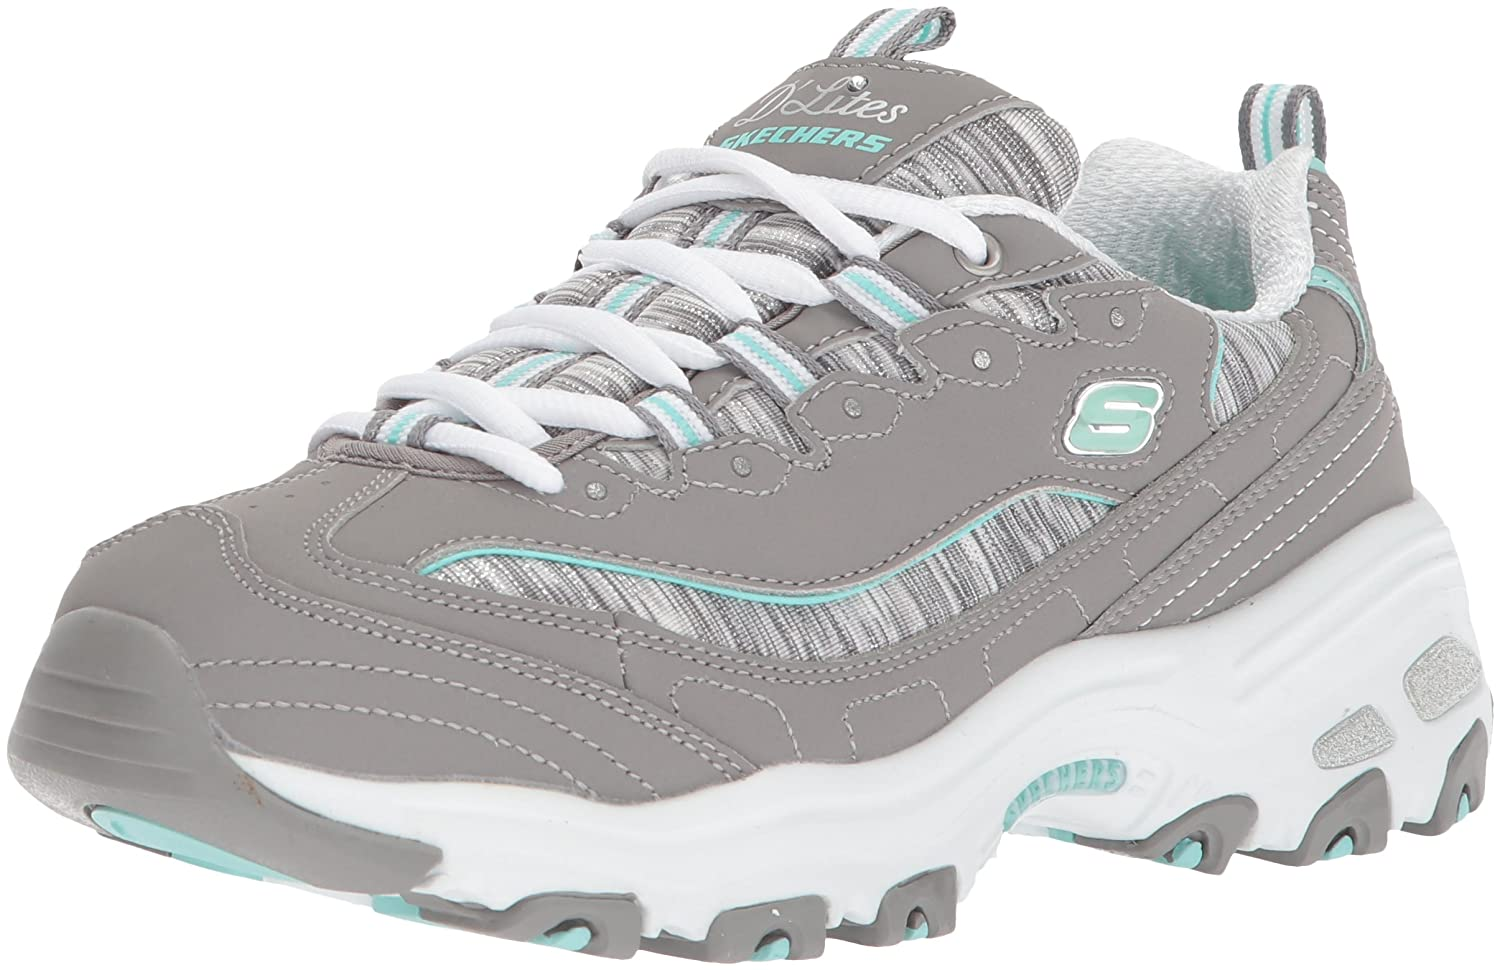 Skechers Women's DLites Interlude Sneaker B074FP56S2 6 B(M) US|Gray Mint